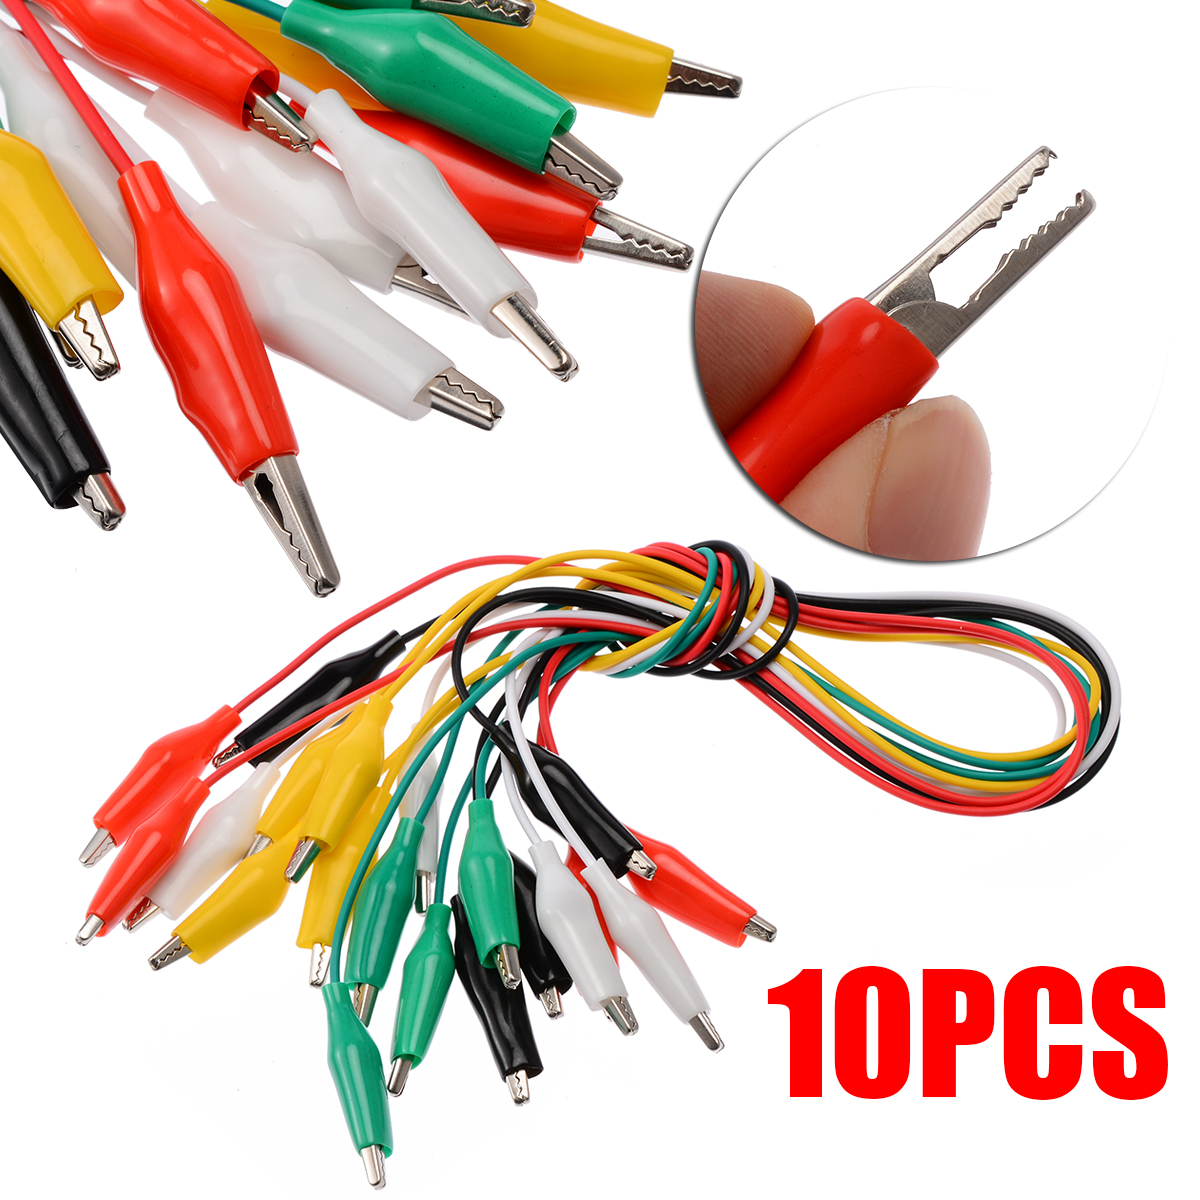 40 Electric Alligator Clip Test Leads Double-ended Crocodile Clip Jumper Cable